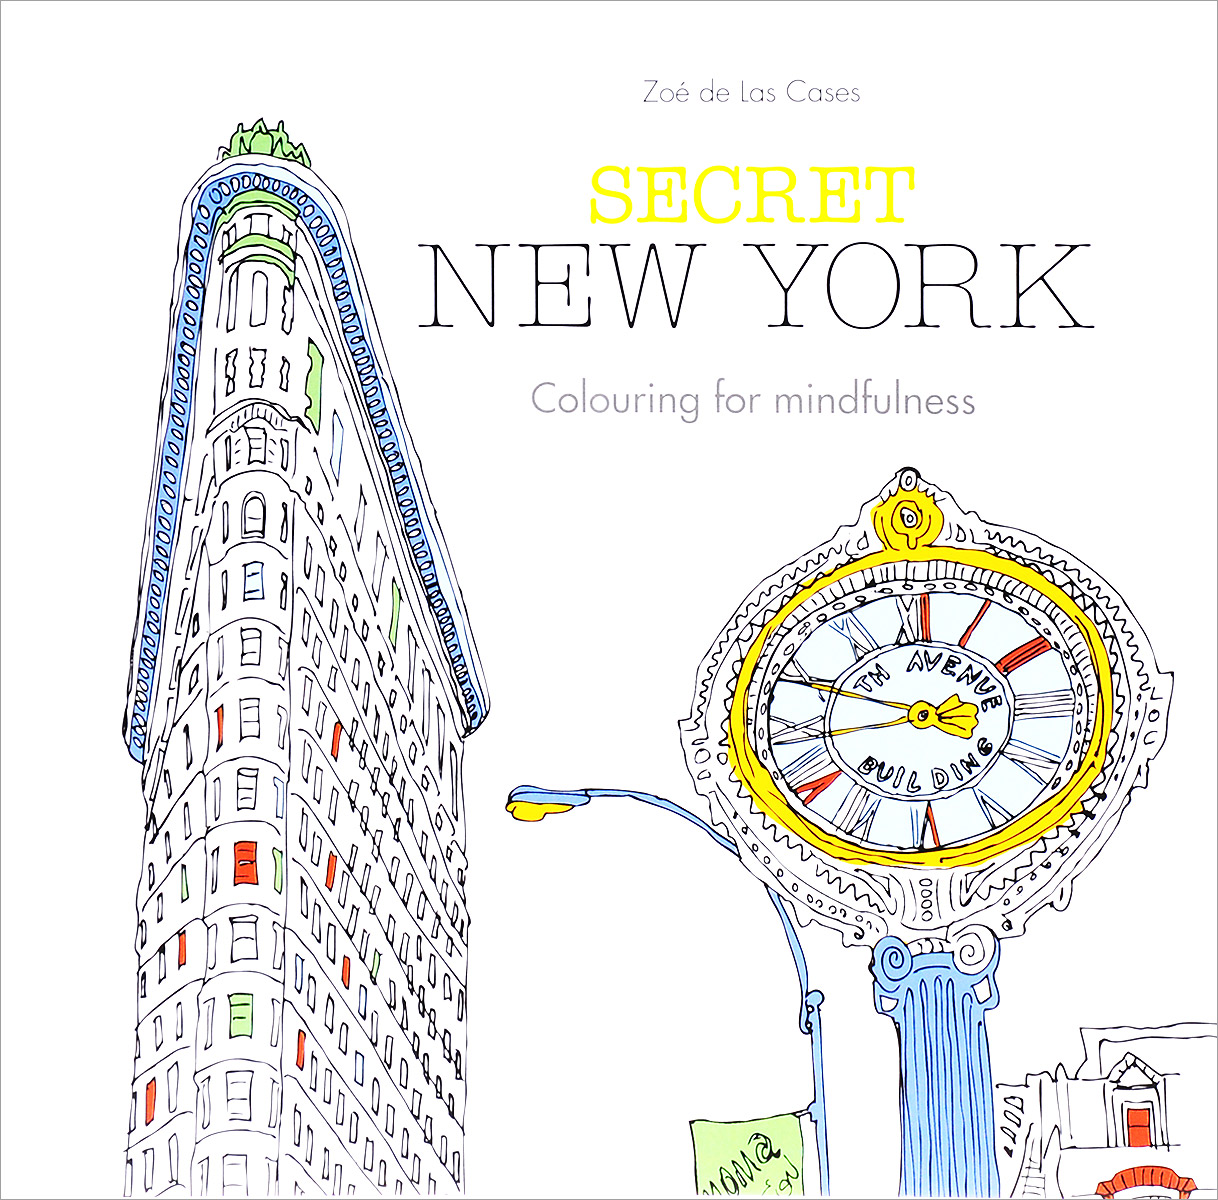 Secret New York: Colouring for Mindfulness found in brooklyn